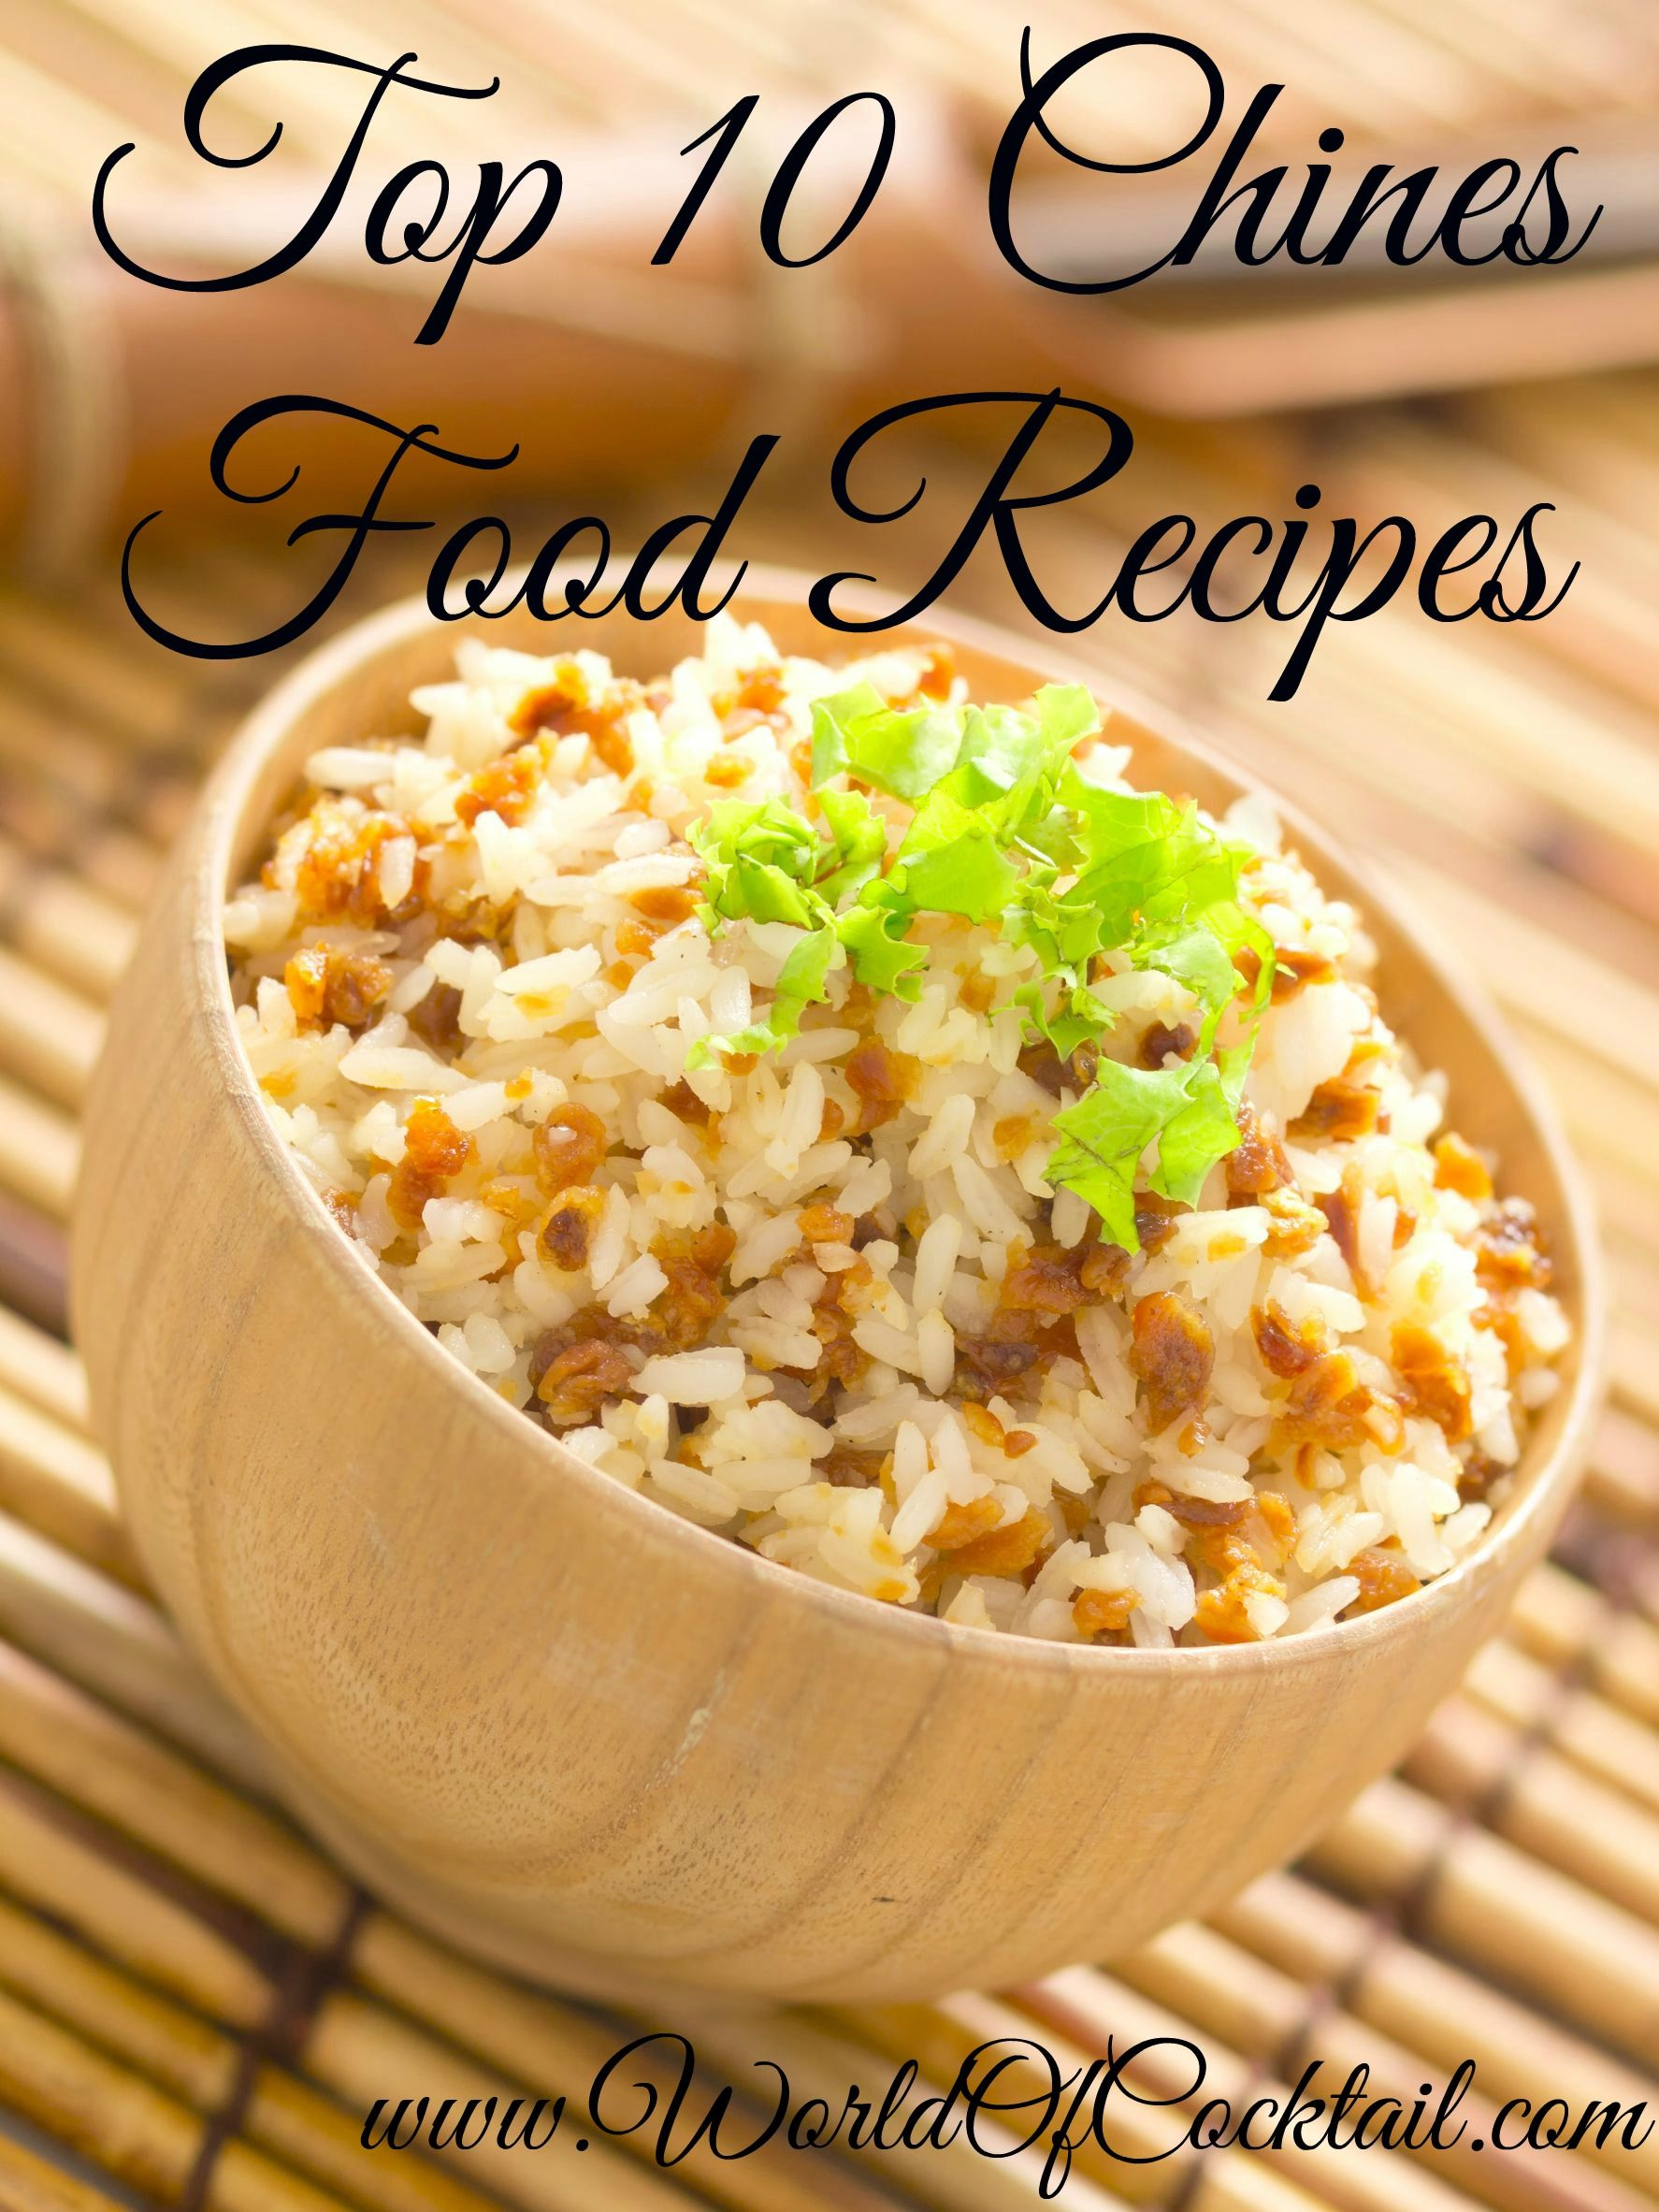 Top 10 chines food recipes fried rice rice and chinese recipes top 10 chines food recipes forumfinder Image collections